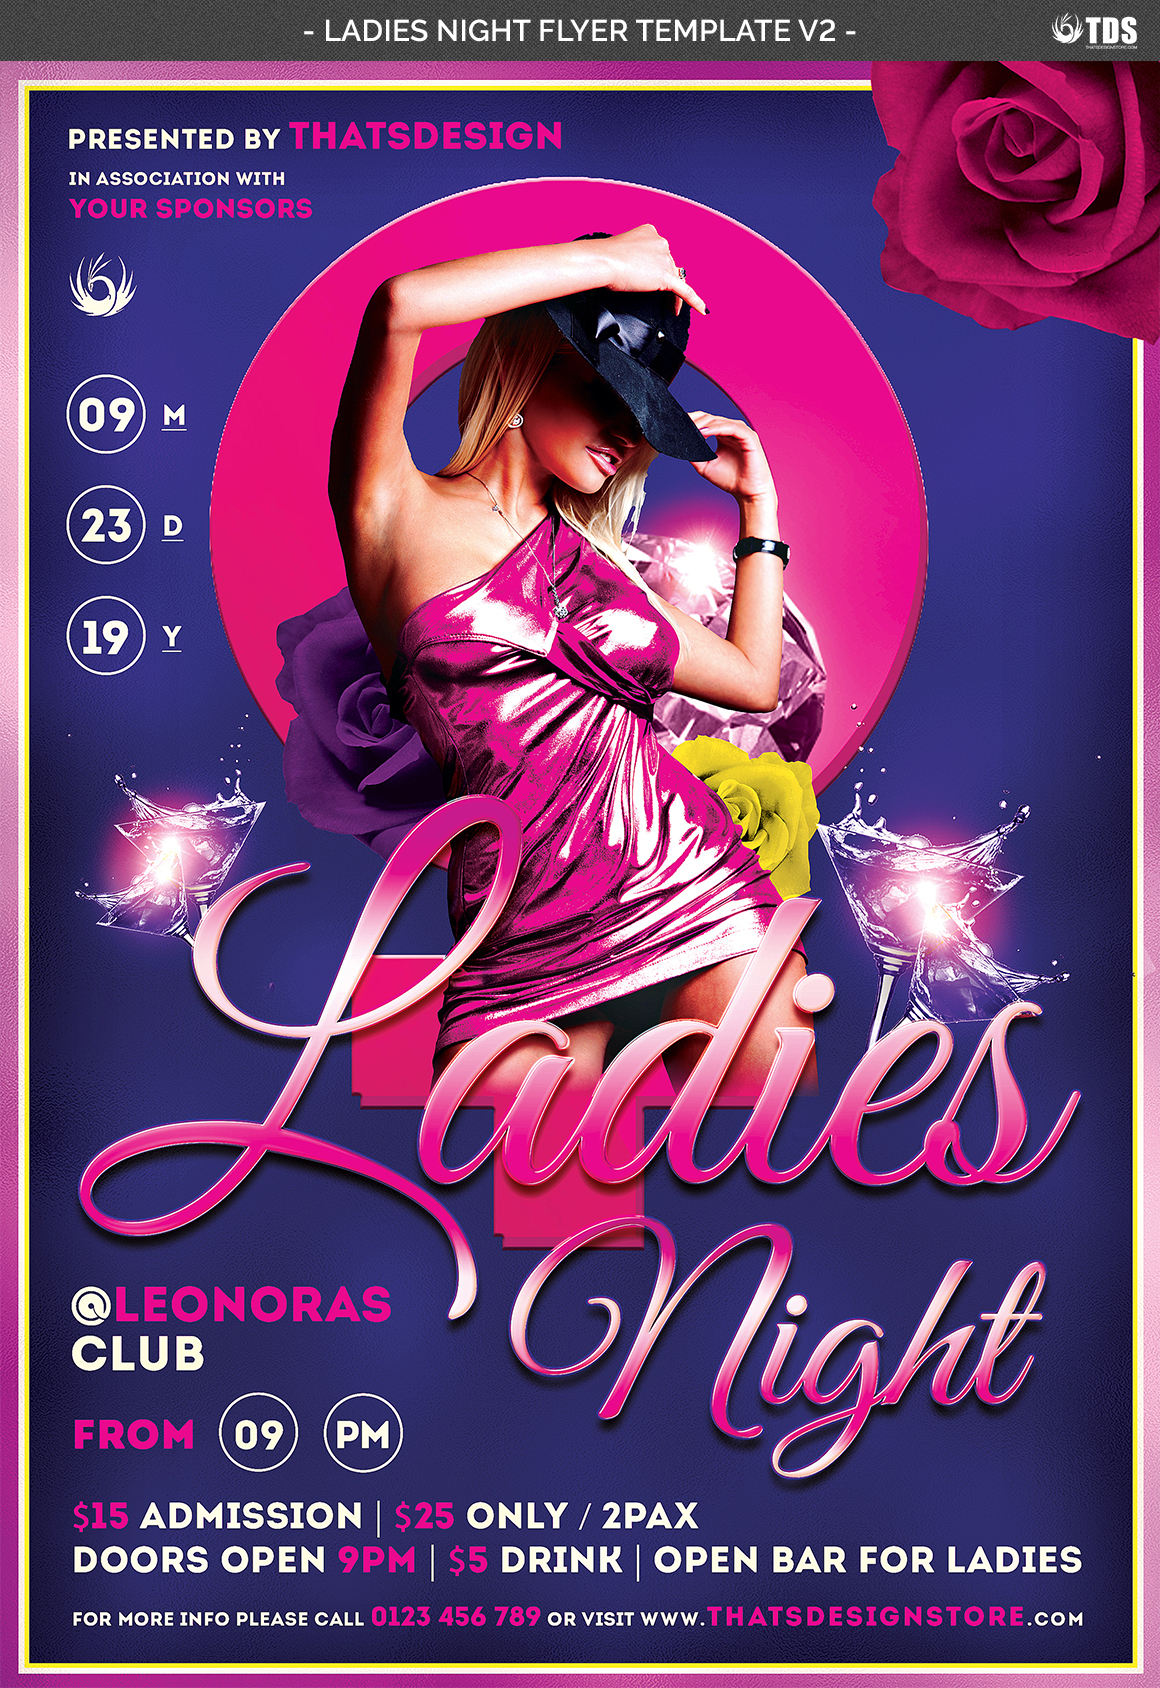 Ladies Night Flyer Template V2 example image 5